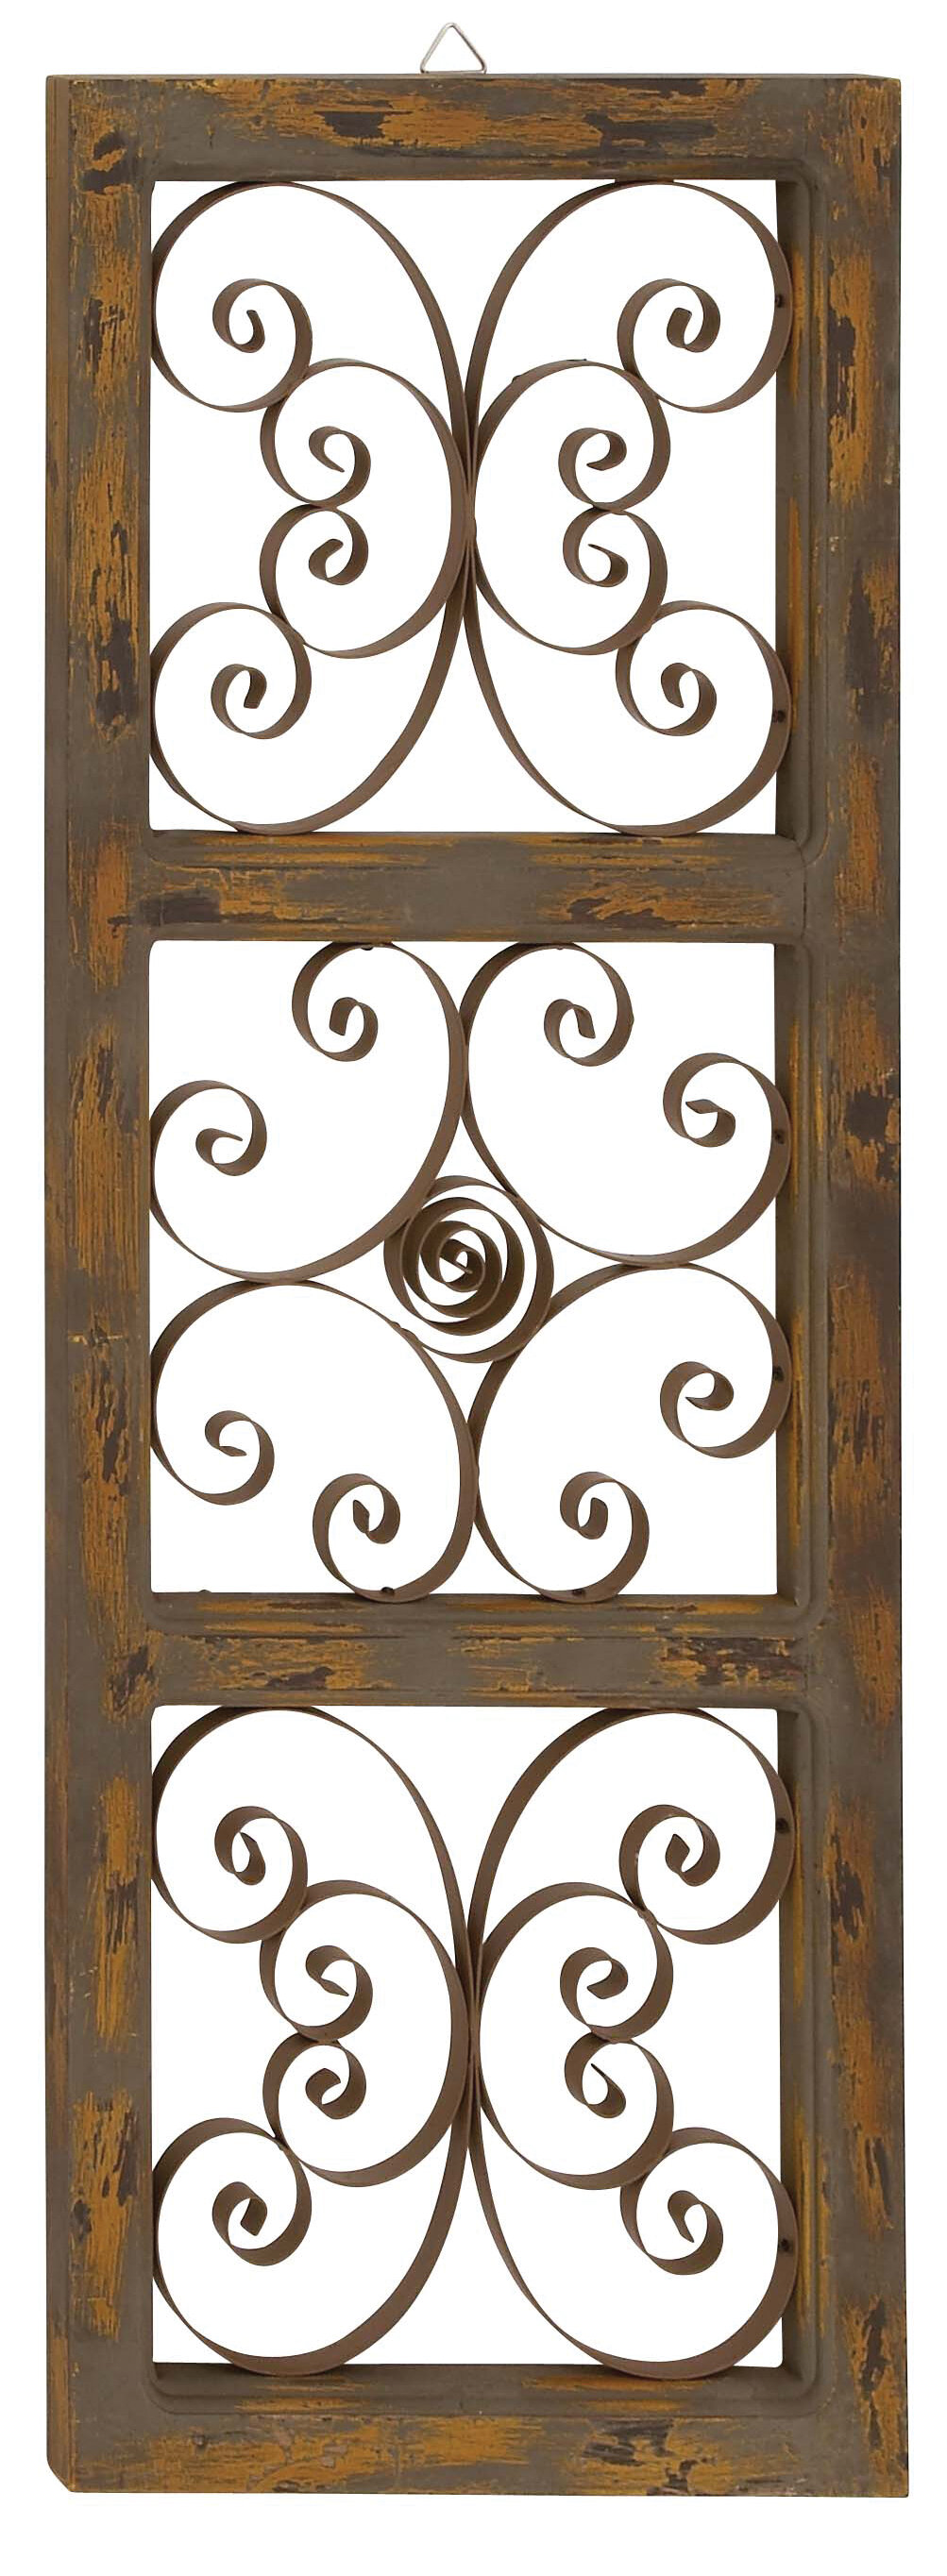 Wood And Metal Door Wall Decor Cool Three Posts Wood And Metal Wall Décor & Reviews  Wayfair Design Ideas